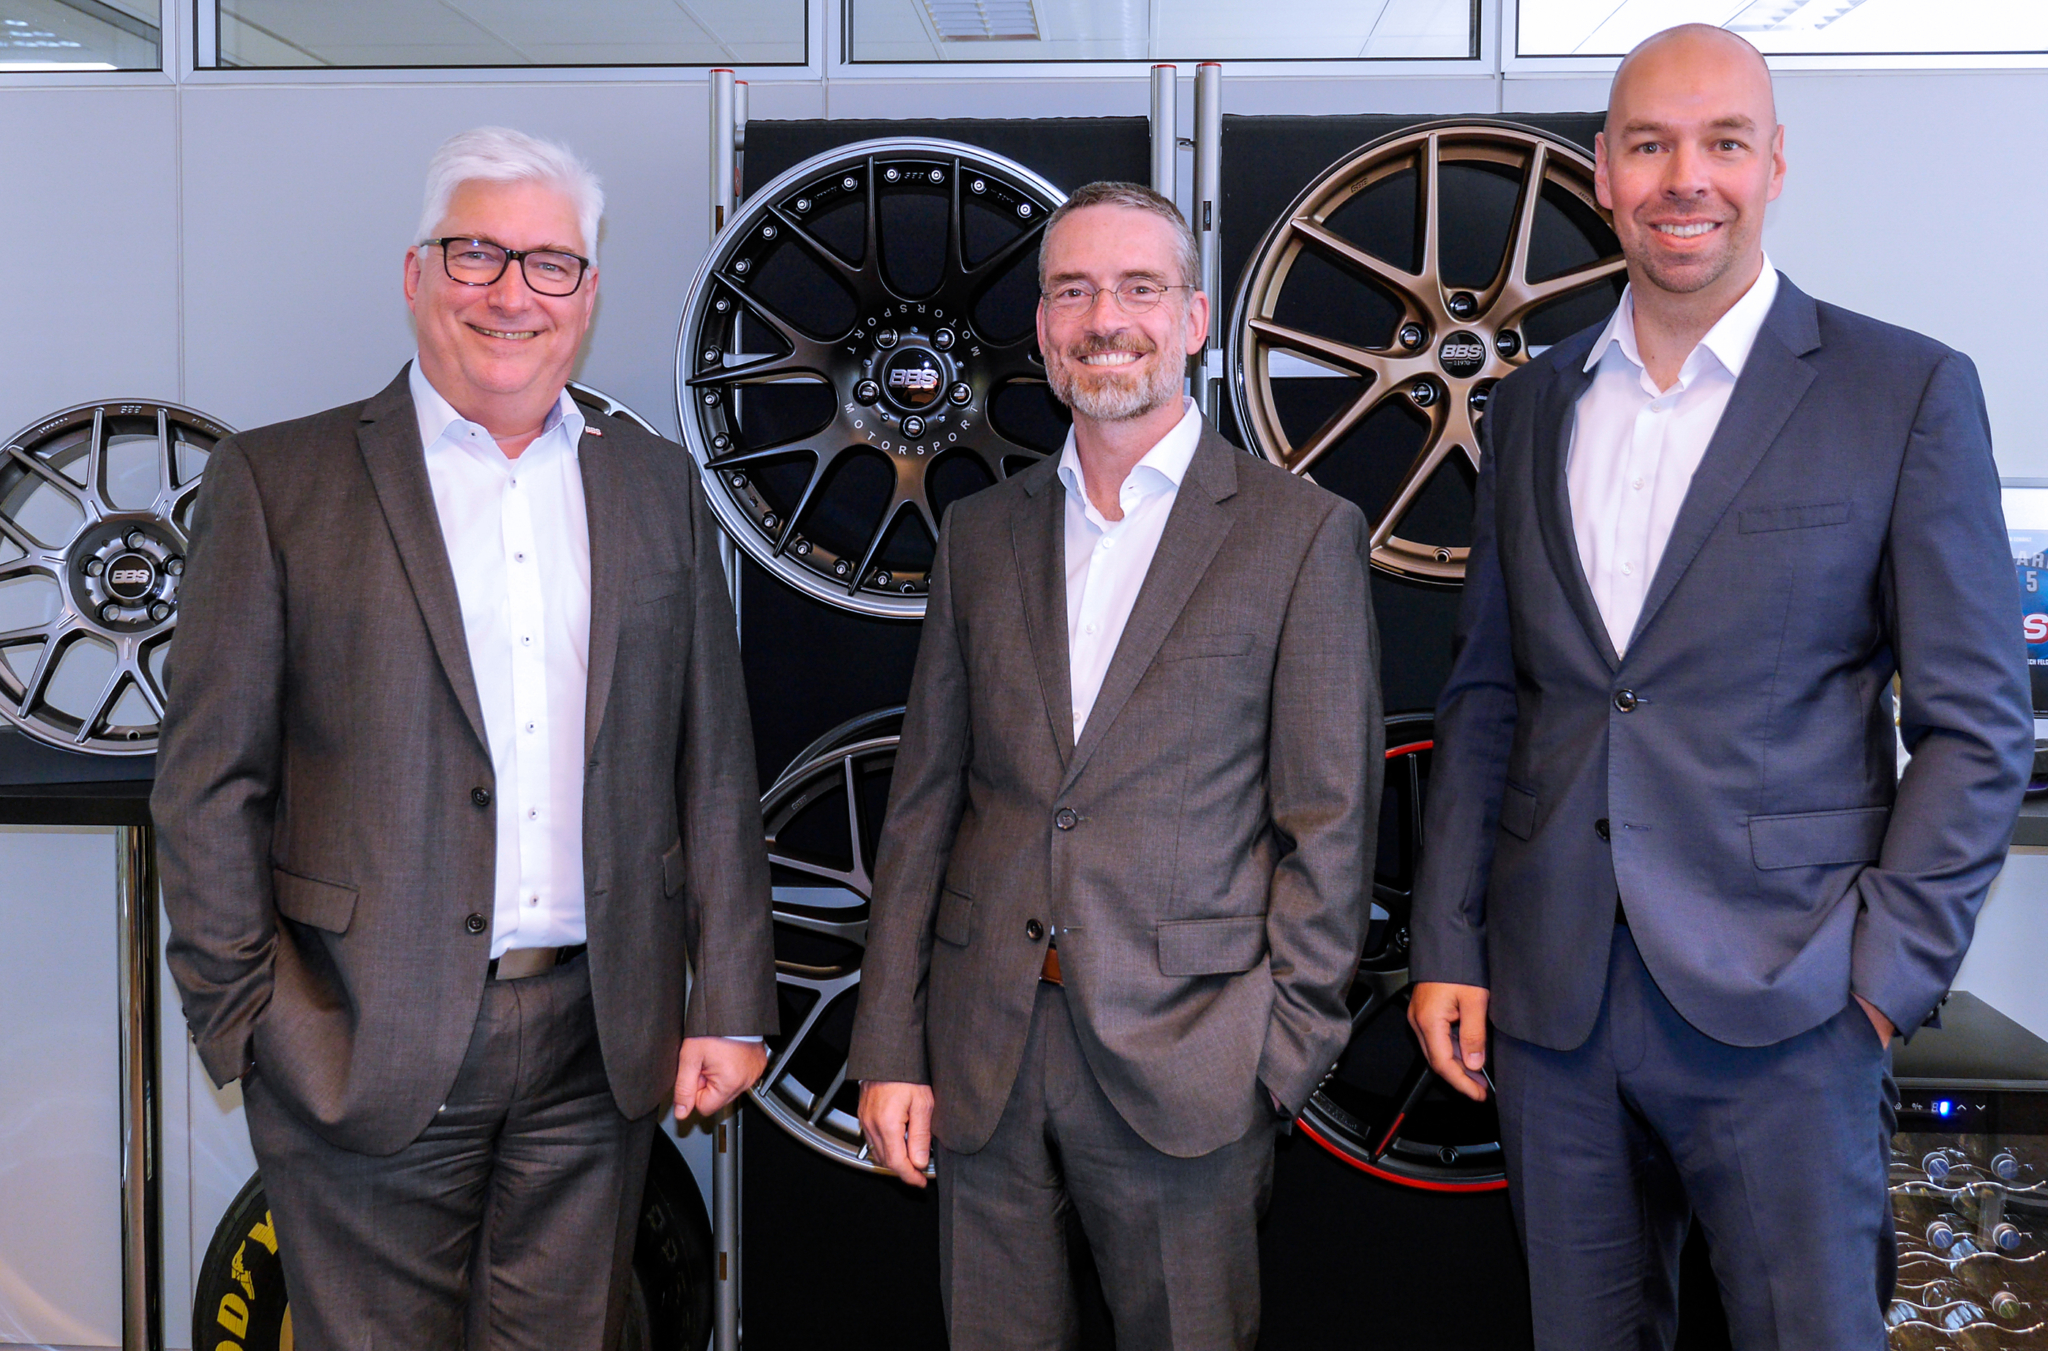 BBS appoints Markus Wartosch as global head of sales and marketing